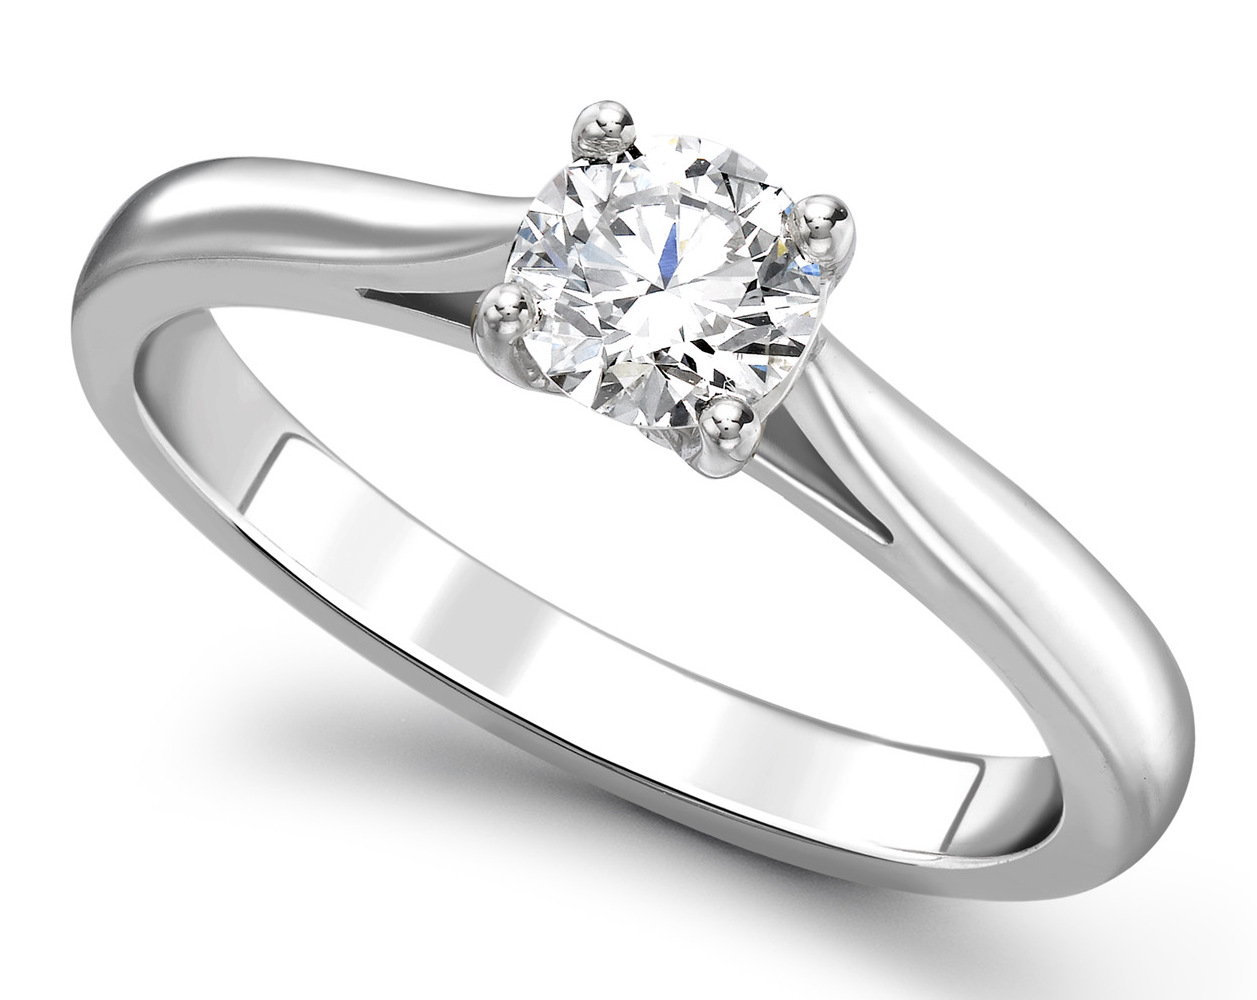 Round Four Claw White Gold 950 Engagement Ring GRC783 Main Image